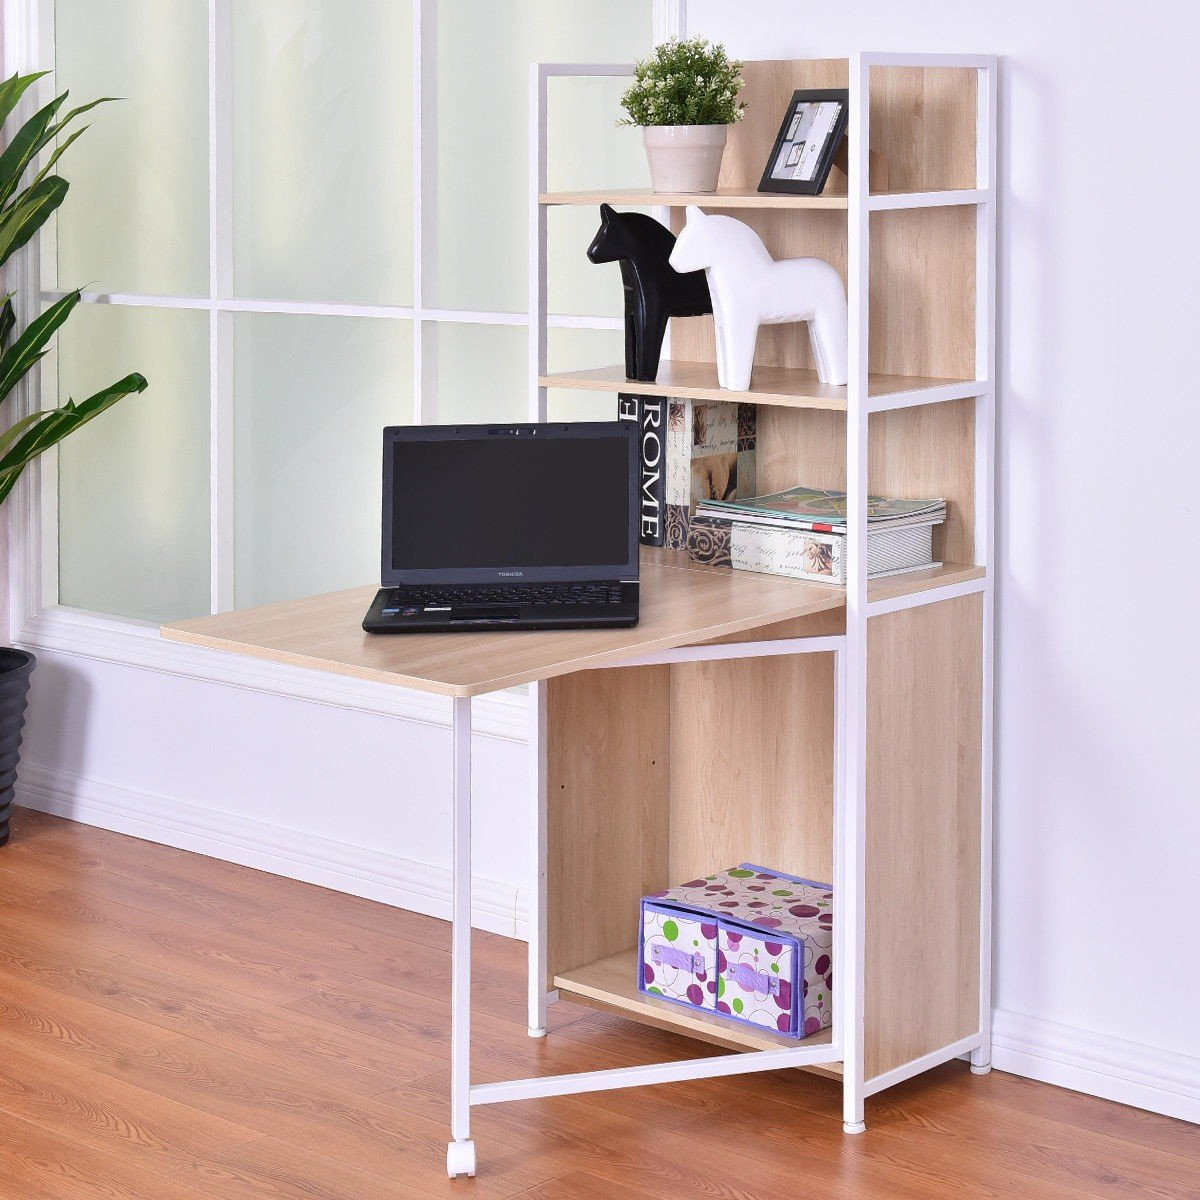 wall p src harper ostkcdn mount com out convertible prod blvd gray desk raeburne fold